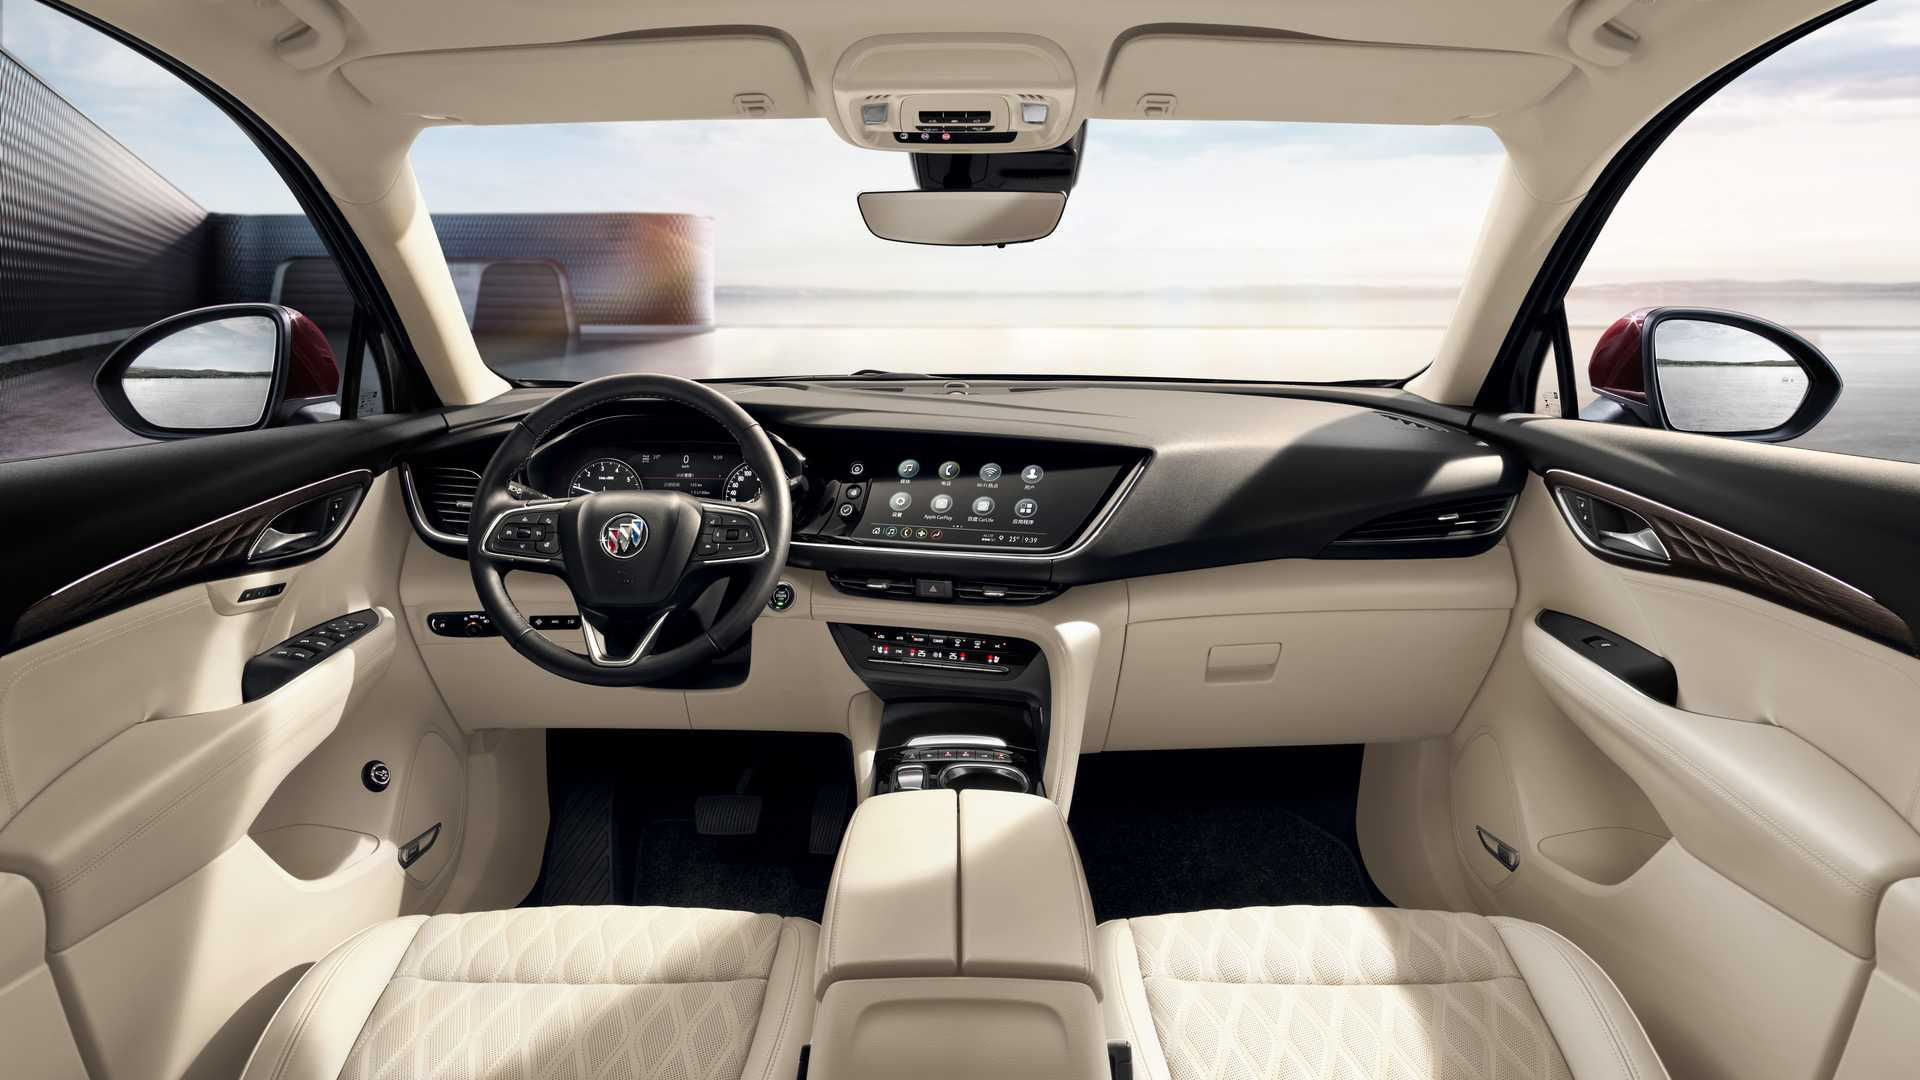 2021 Buick Envision Reveals Sophisticated Interior In New 2021 Buick Envision Specs, Price, Interior